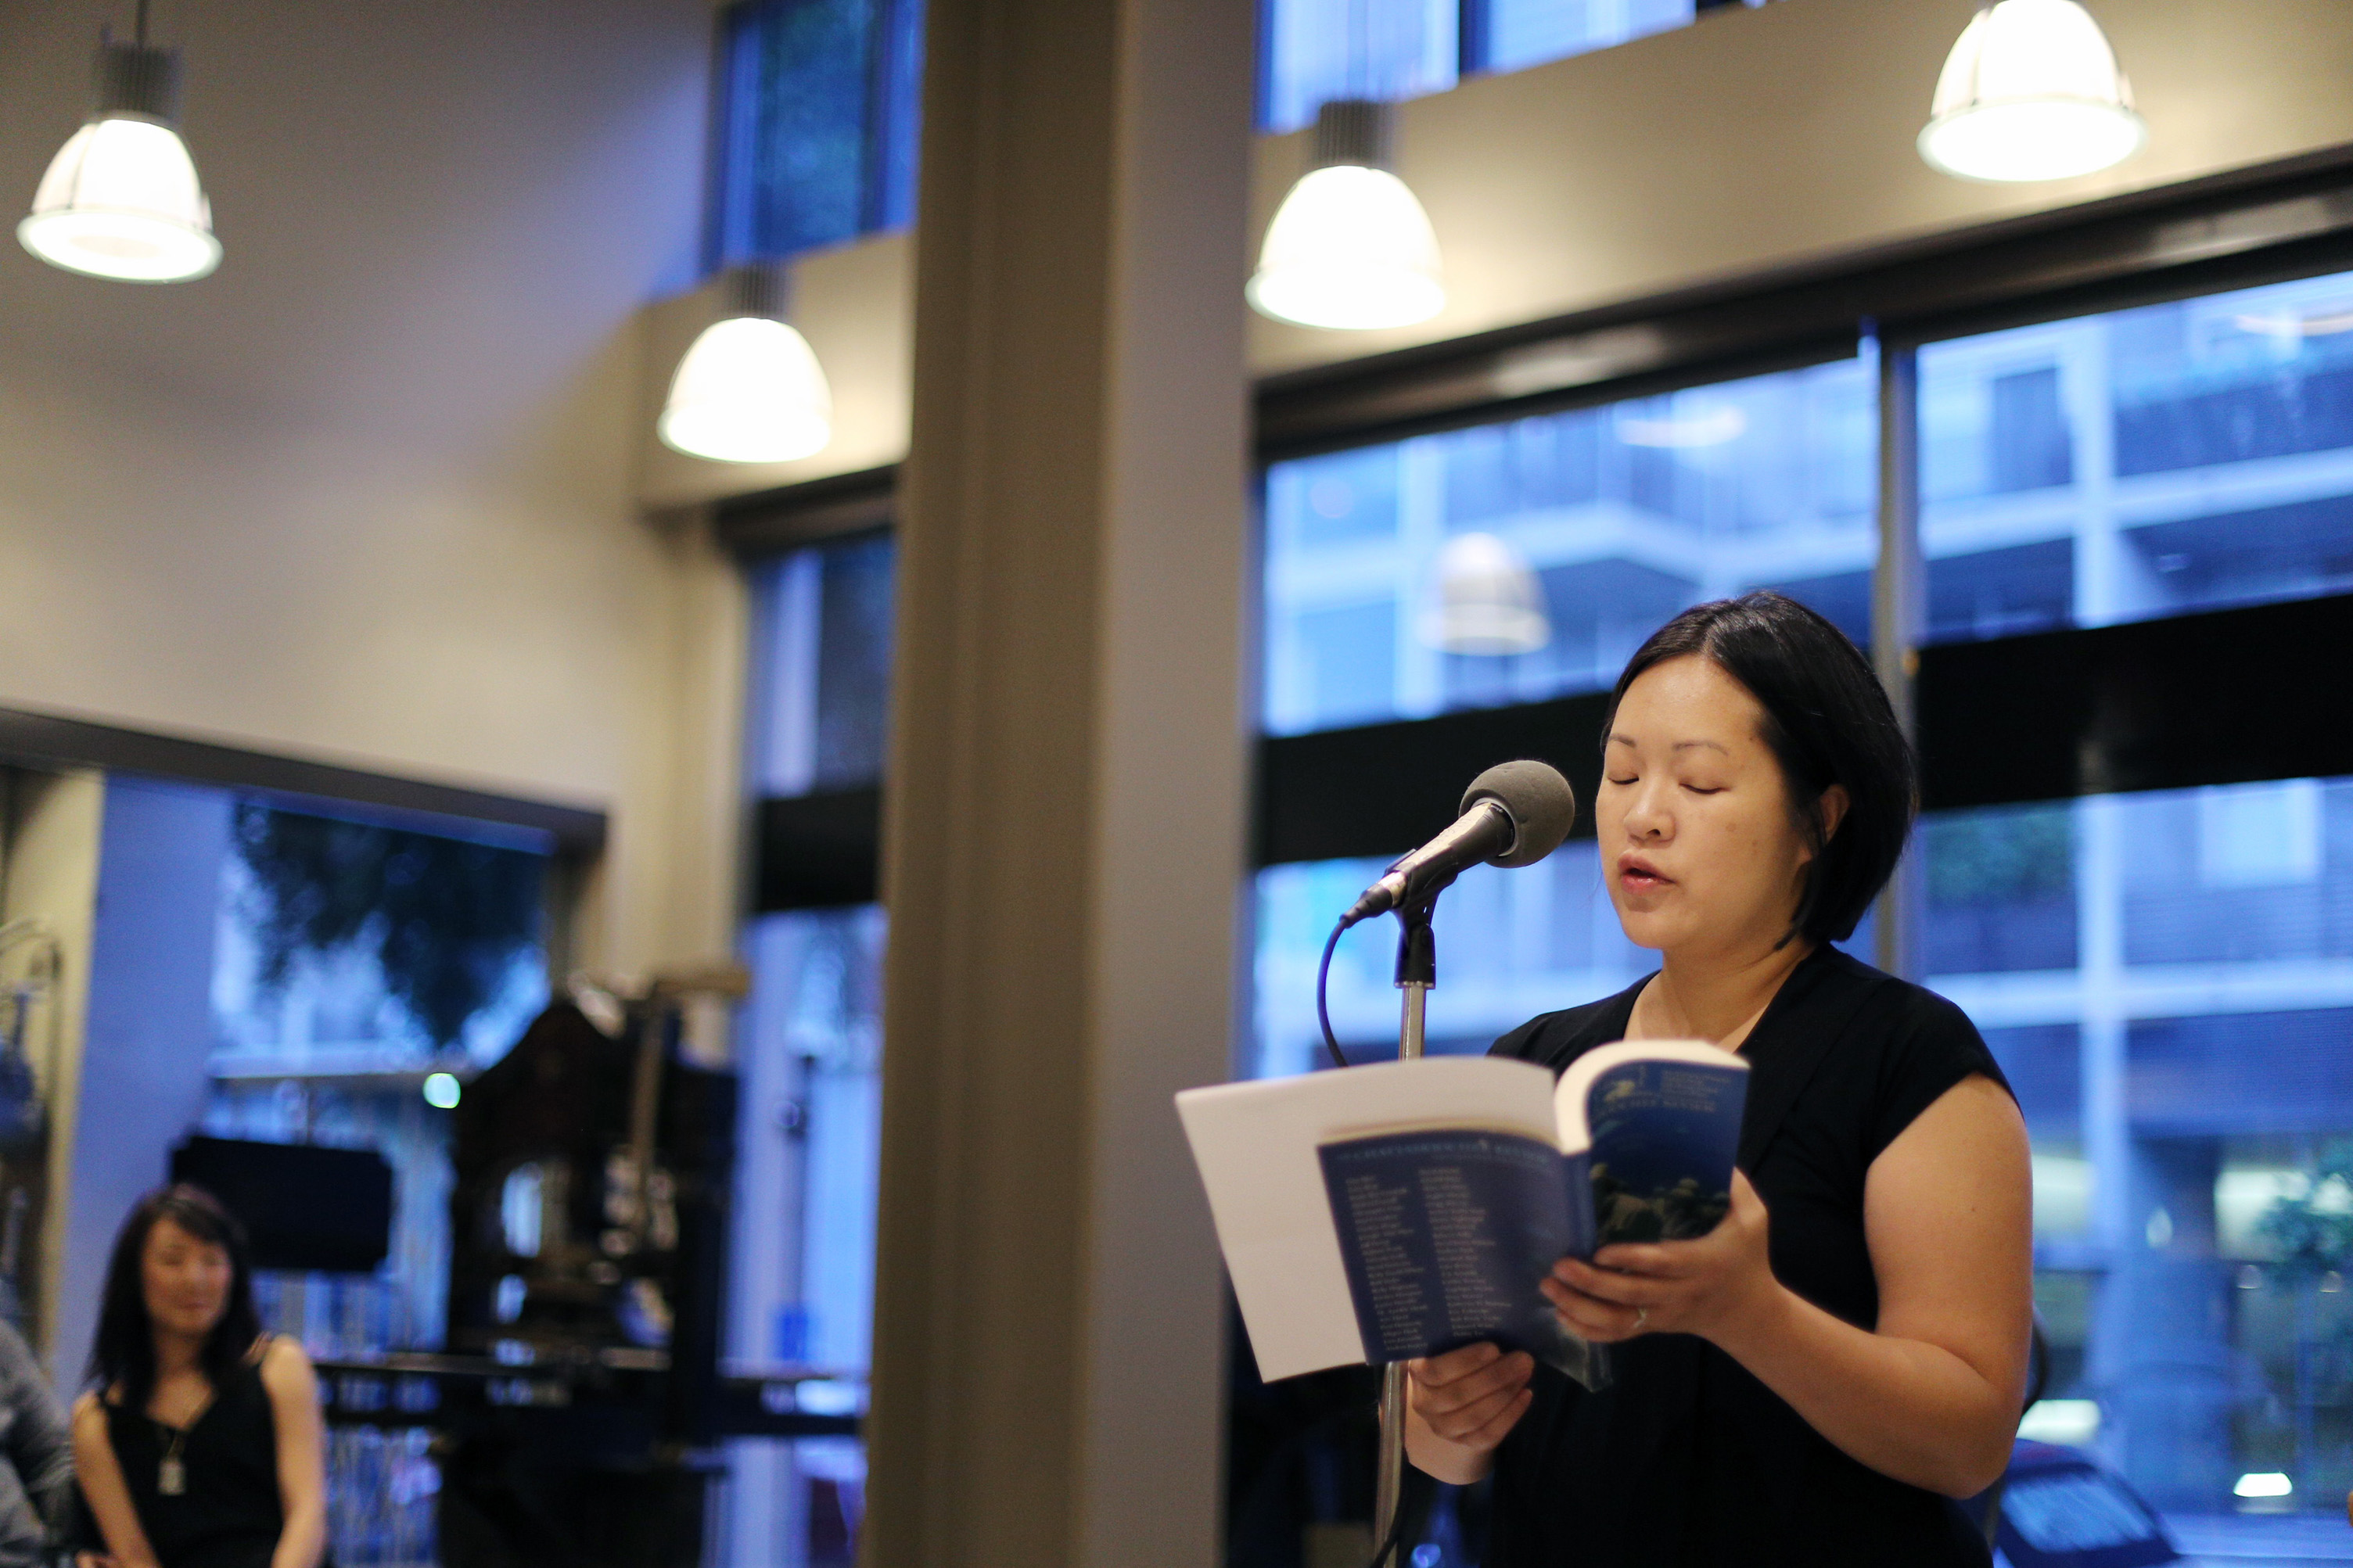 Debbie Yee reads at the American Bookbinders Museum after meditating on the image of the body as book.